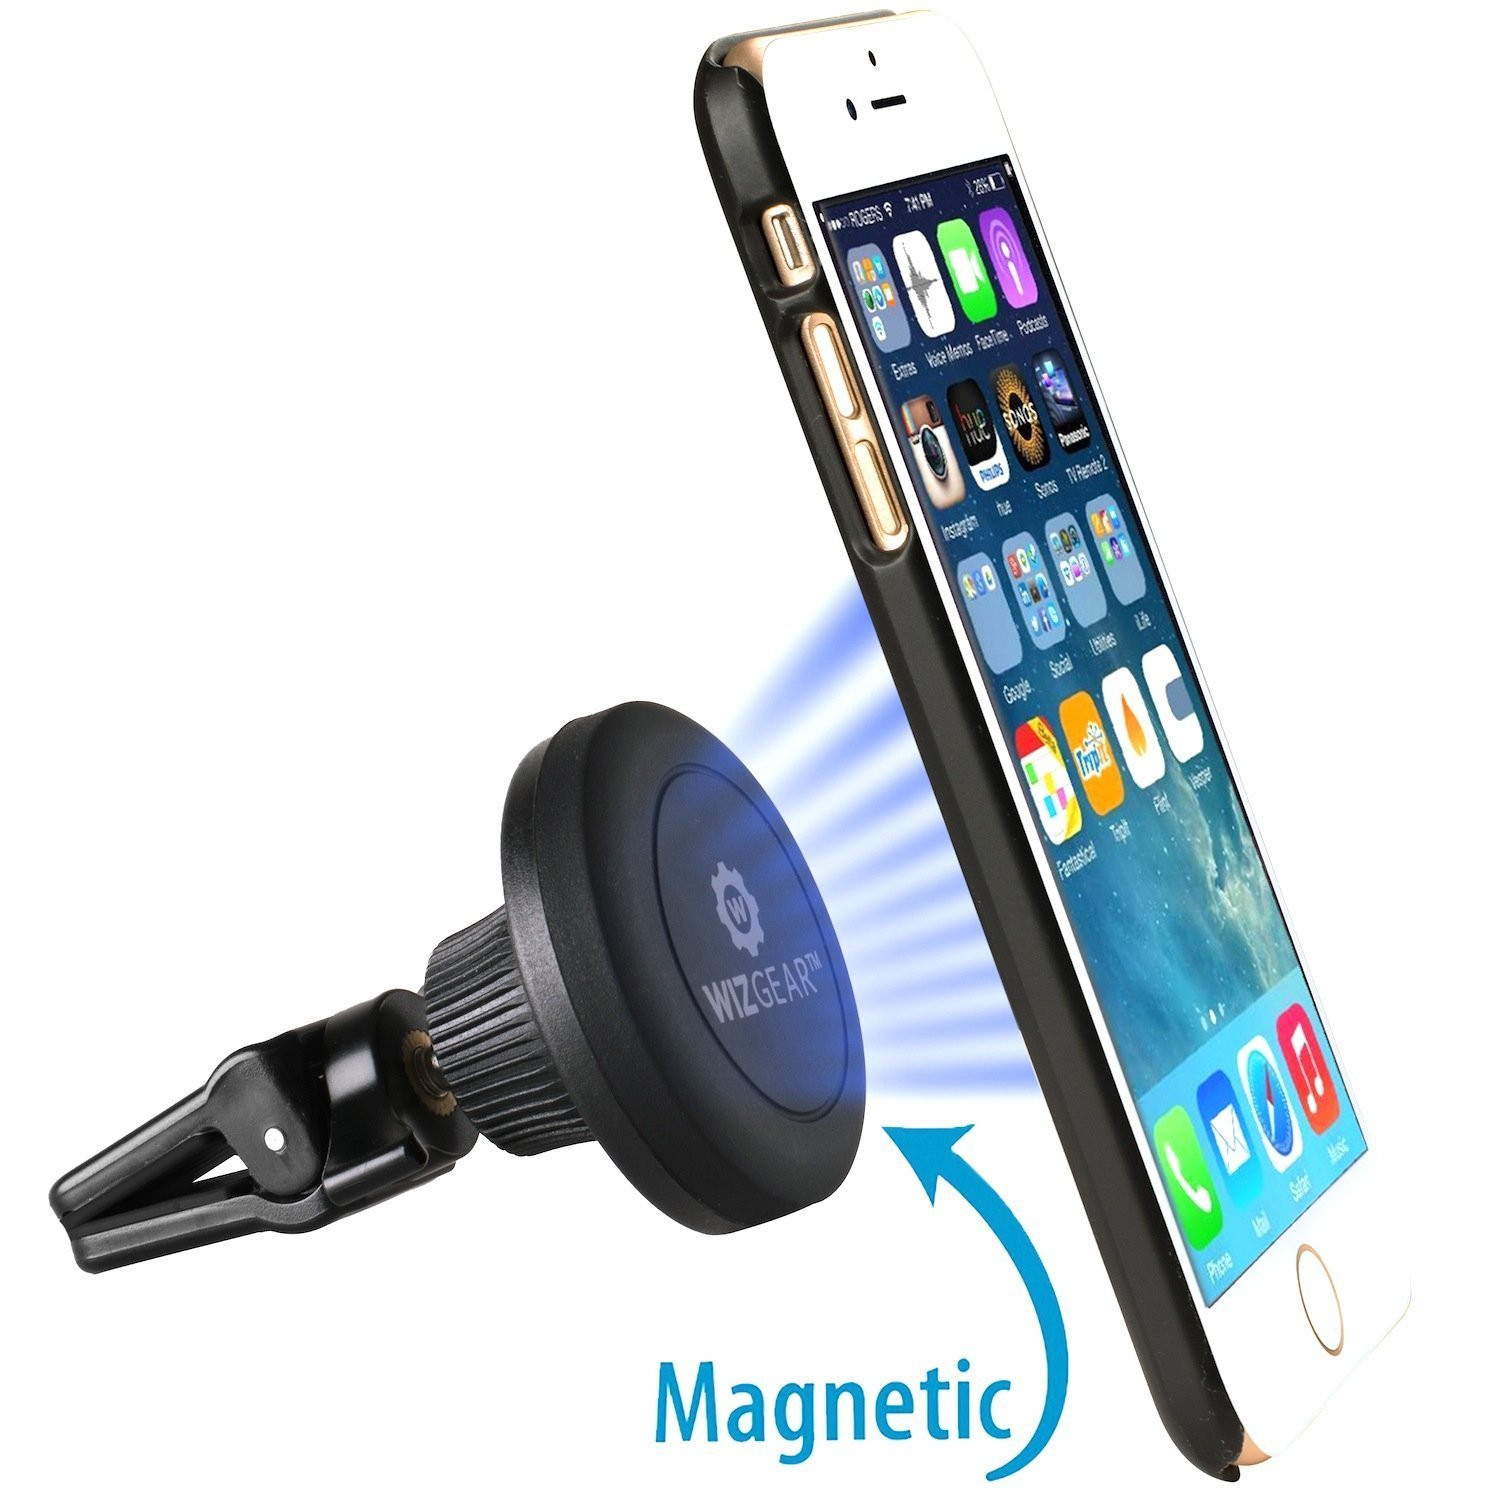 WizGear Universal Twist-Lock Air Vent Magnetic Car Mount Holder, for Cell Phones and Mini Tablets with Fast Swift-Snap Technology